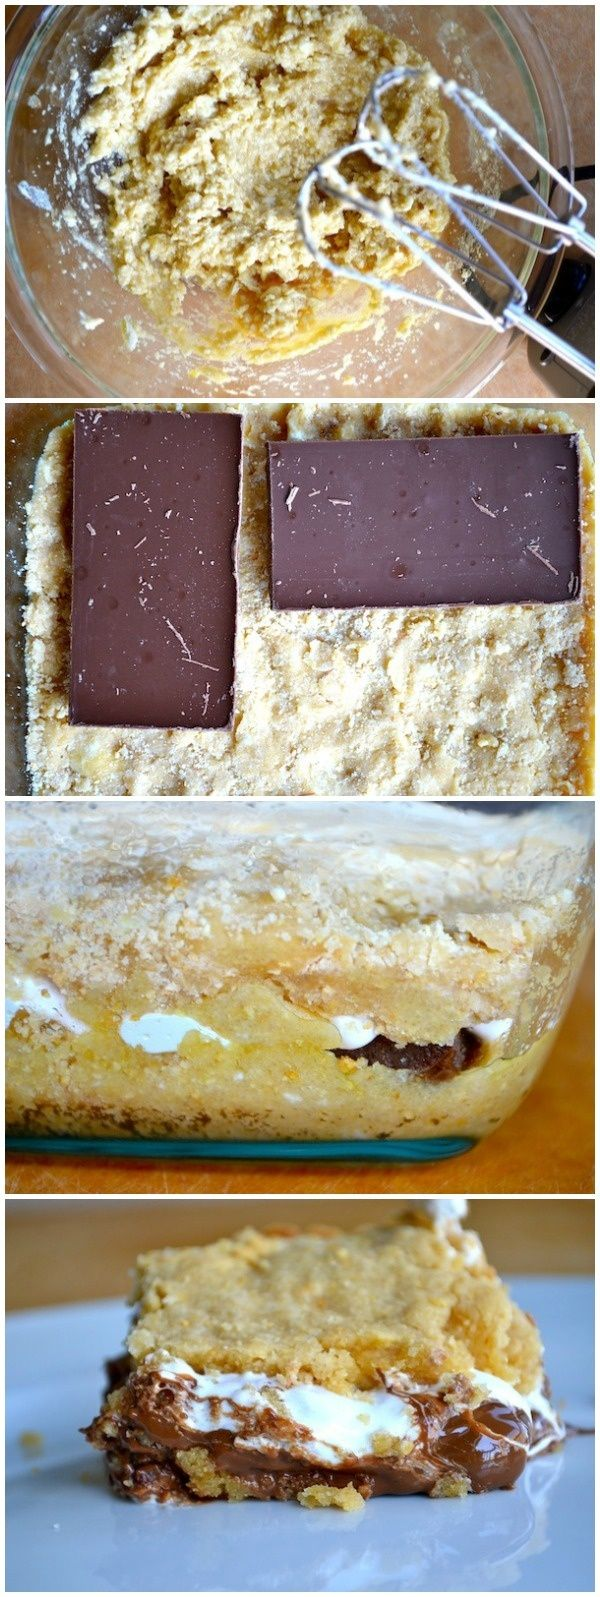 baked smores bars - sounds better than original smores to me!